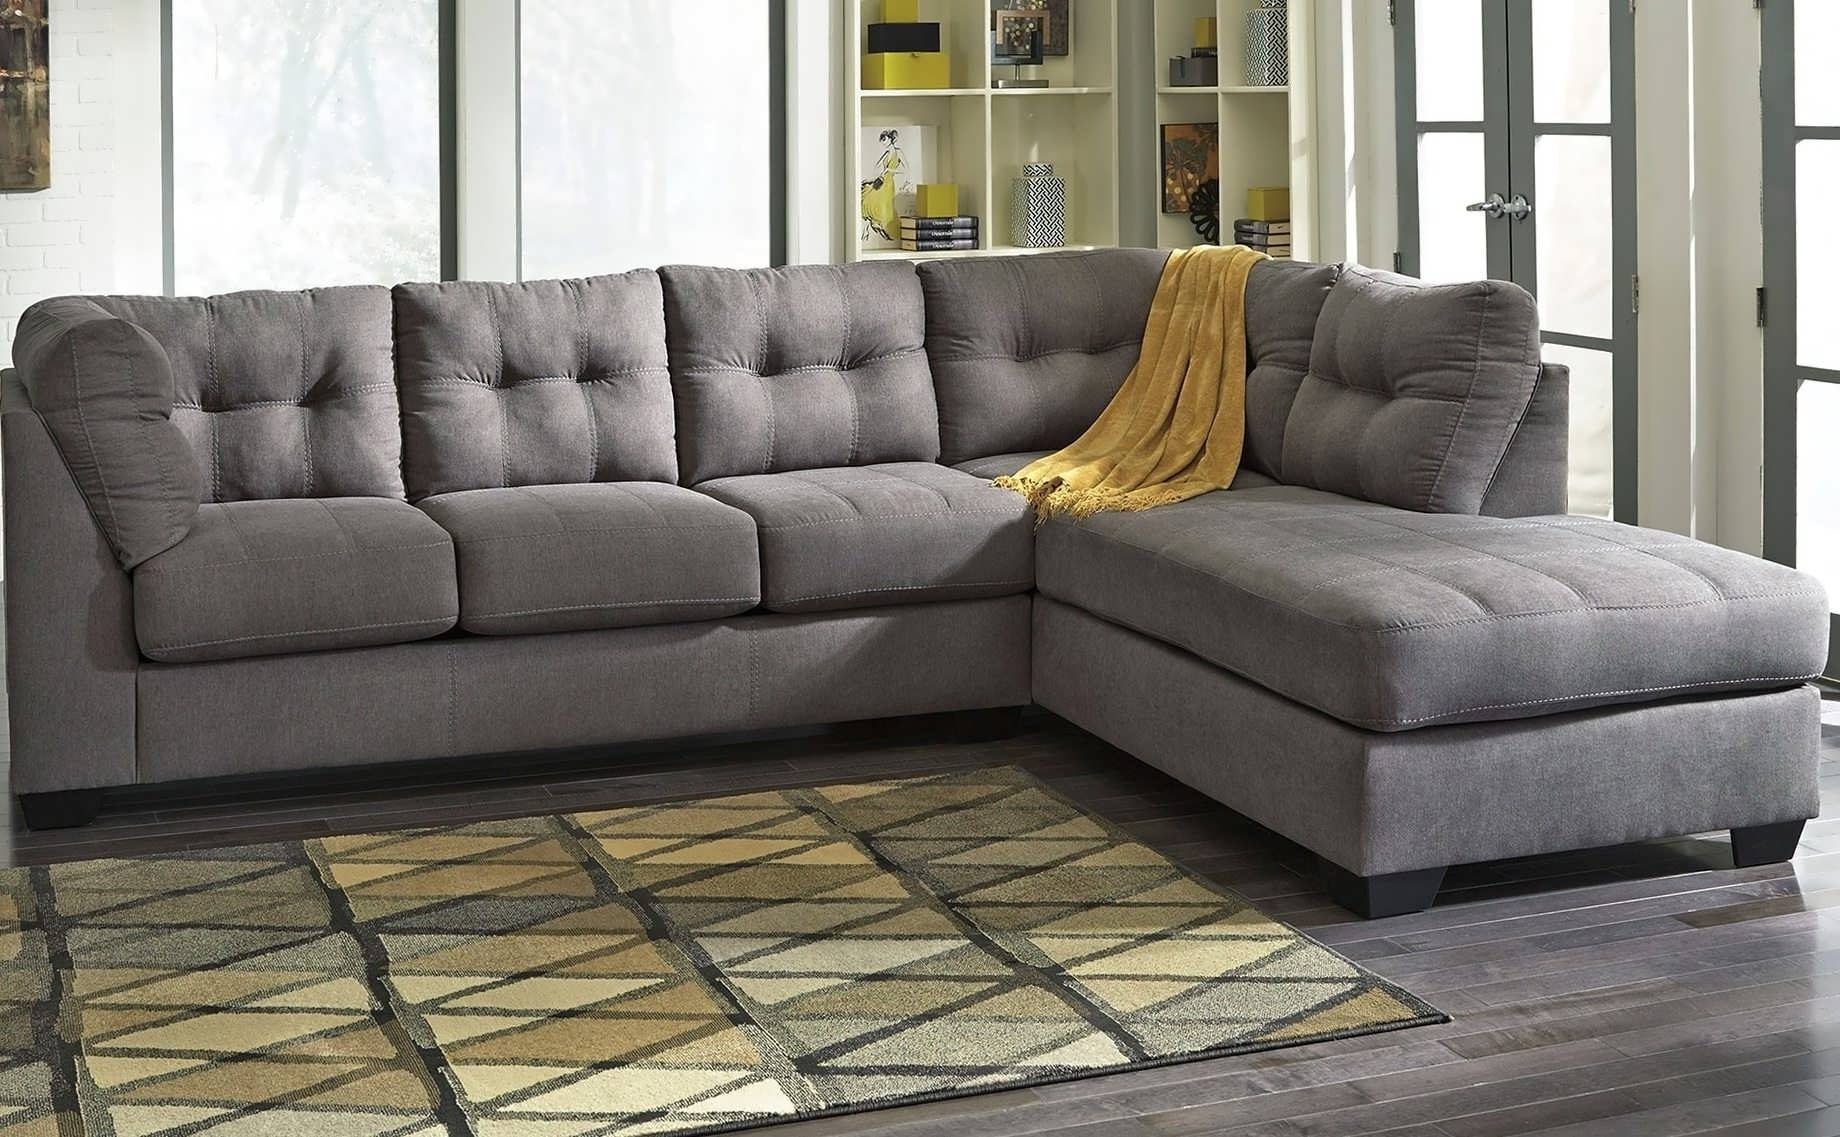 Widely Used Gray Sectionals With Chaise With Regard To Sofa : Grey Sectional With Chaise Oversized Sectional Sofa White (View 15 of 15)